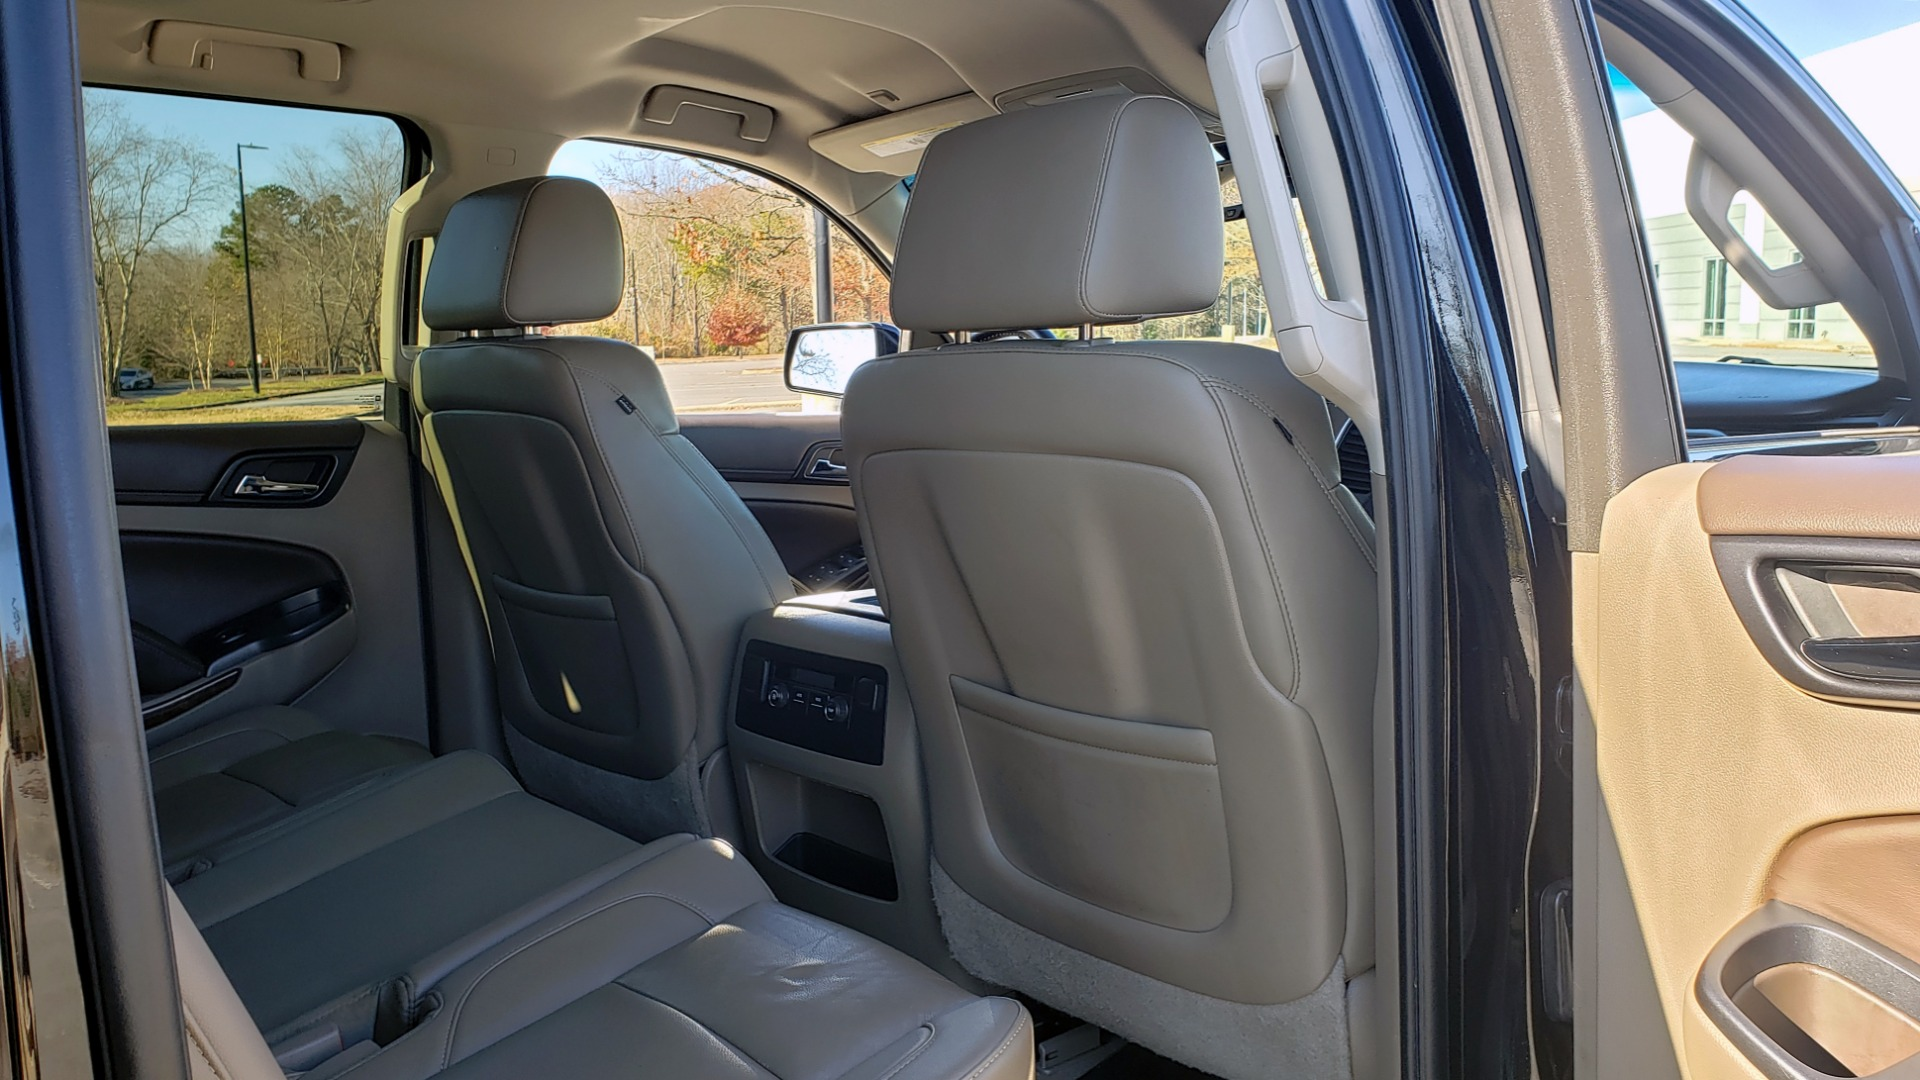 Used 2015 Chevrolet SUBURBAN LT 2WD / NAV / LEATHER / BOSE / 3-ROW / REARVIEW for sale Sold at Formula Imports in Charlotte NC 28227 79